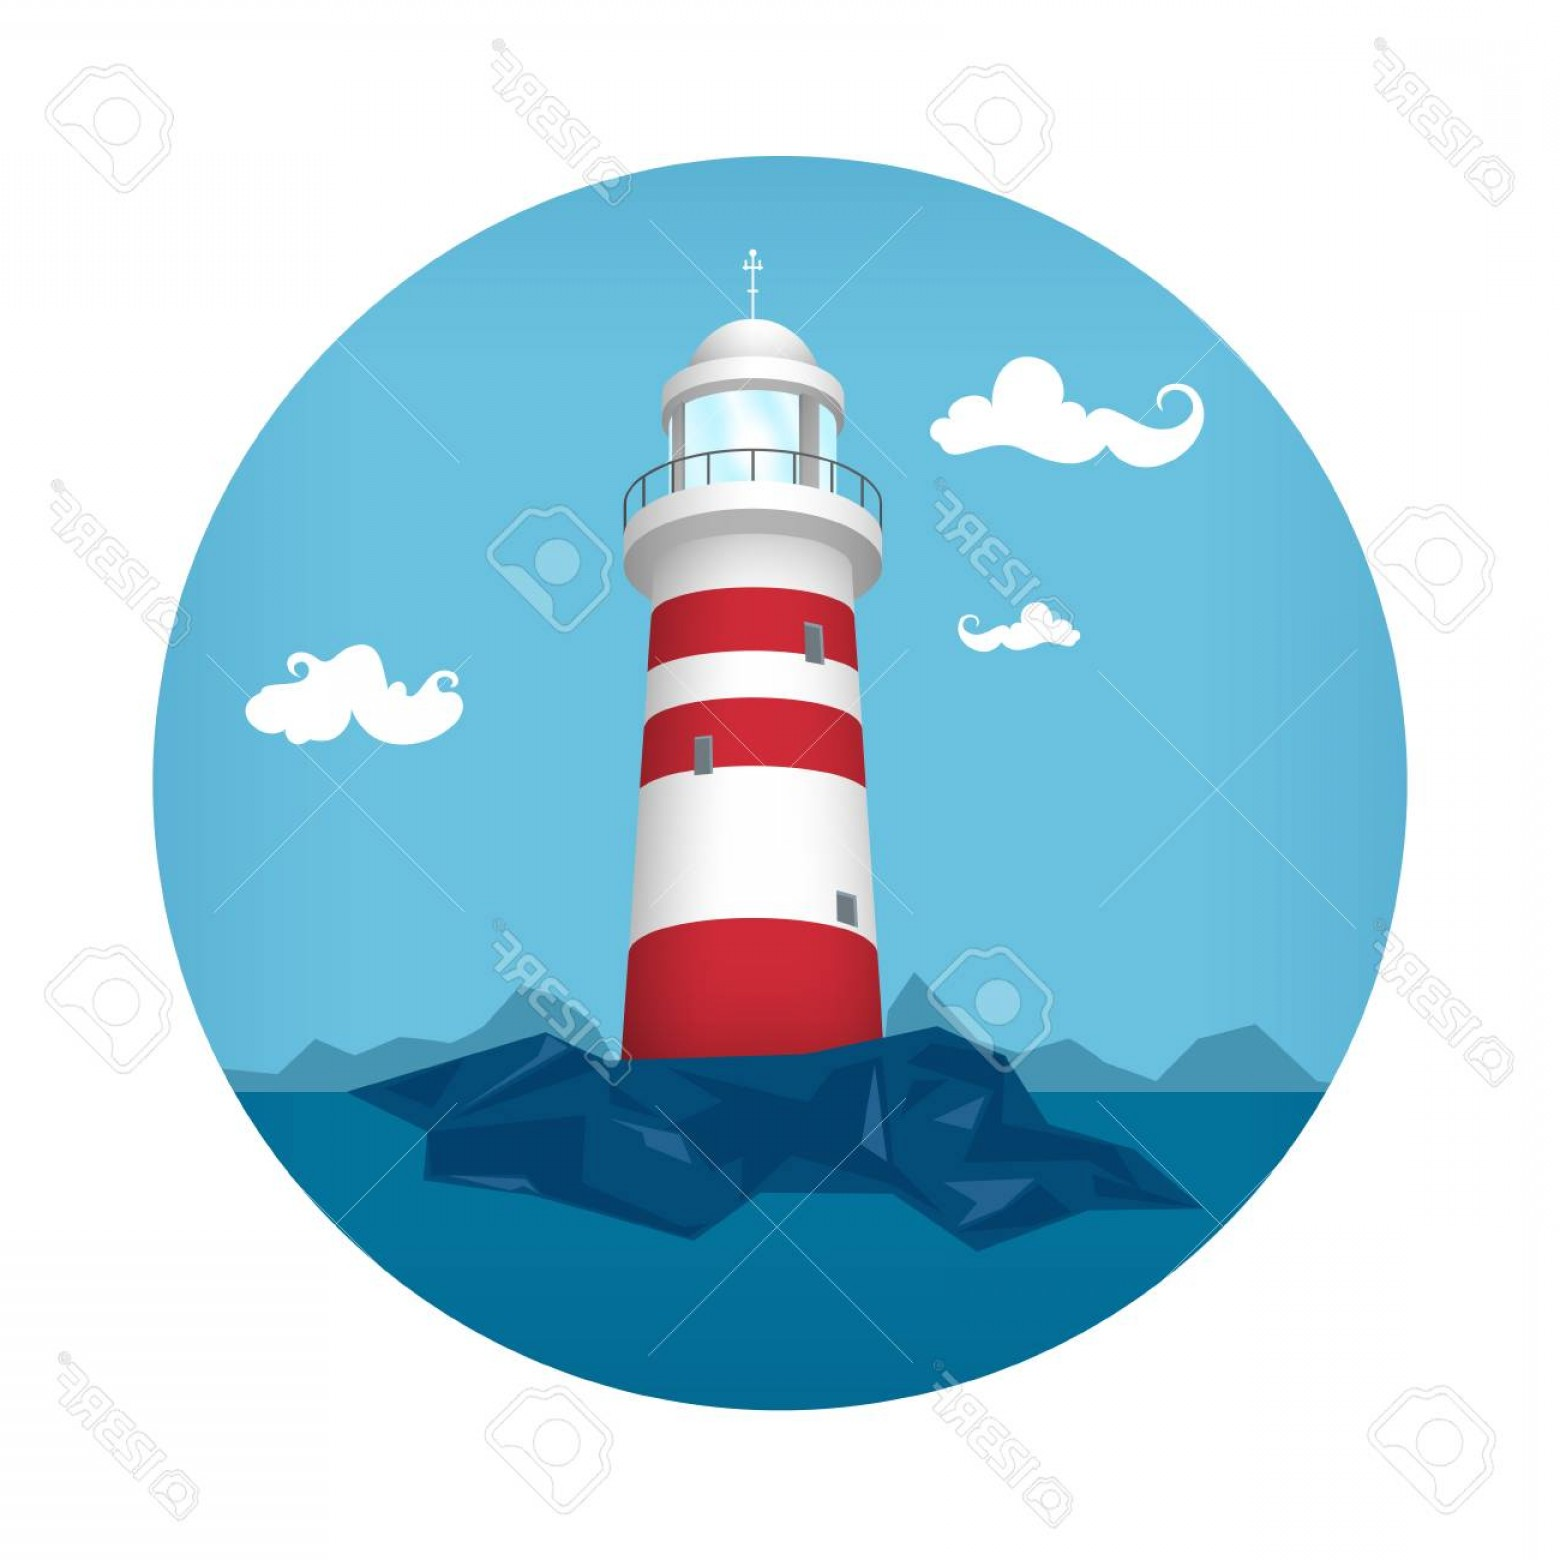 Lighthouse Beacon Silhouette Vector: Photostock Vector Lighthouse Icon Beacon Stands On Rocks Vector Illustration